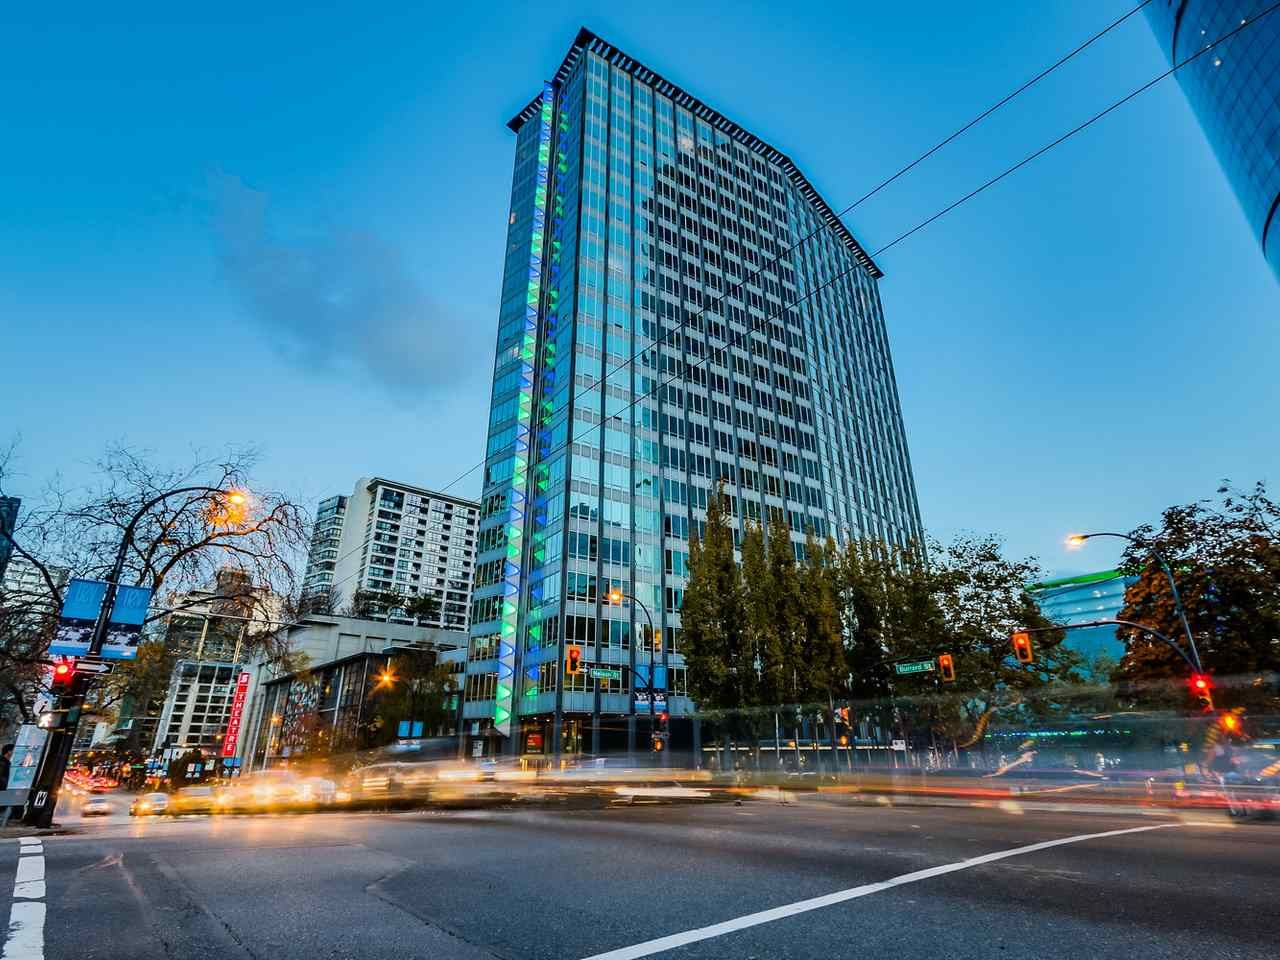 Main Photo: 2004 989 NELSON STREET in : Downtown VW Condo for sale : MLS®# R2013759